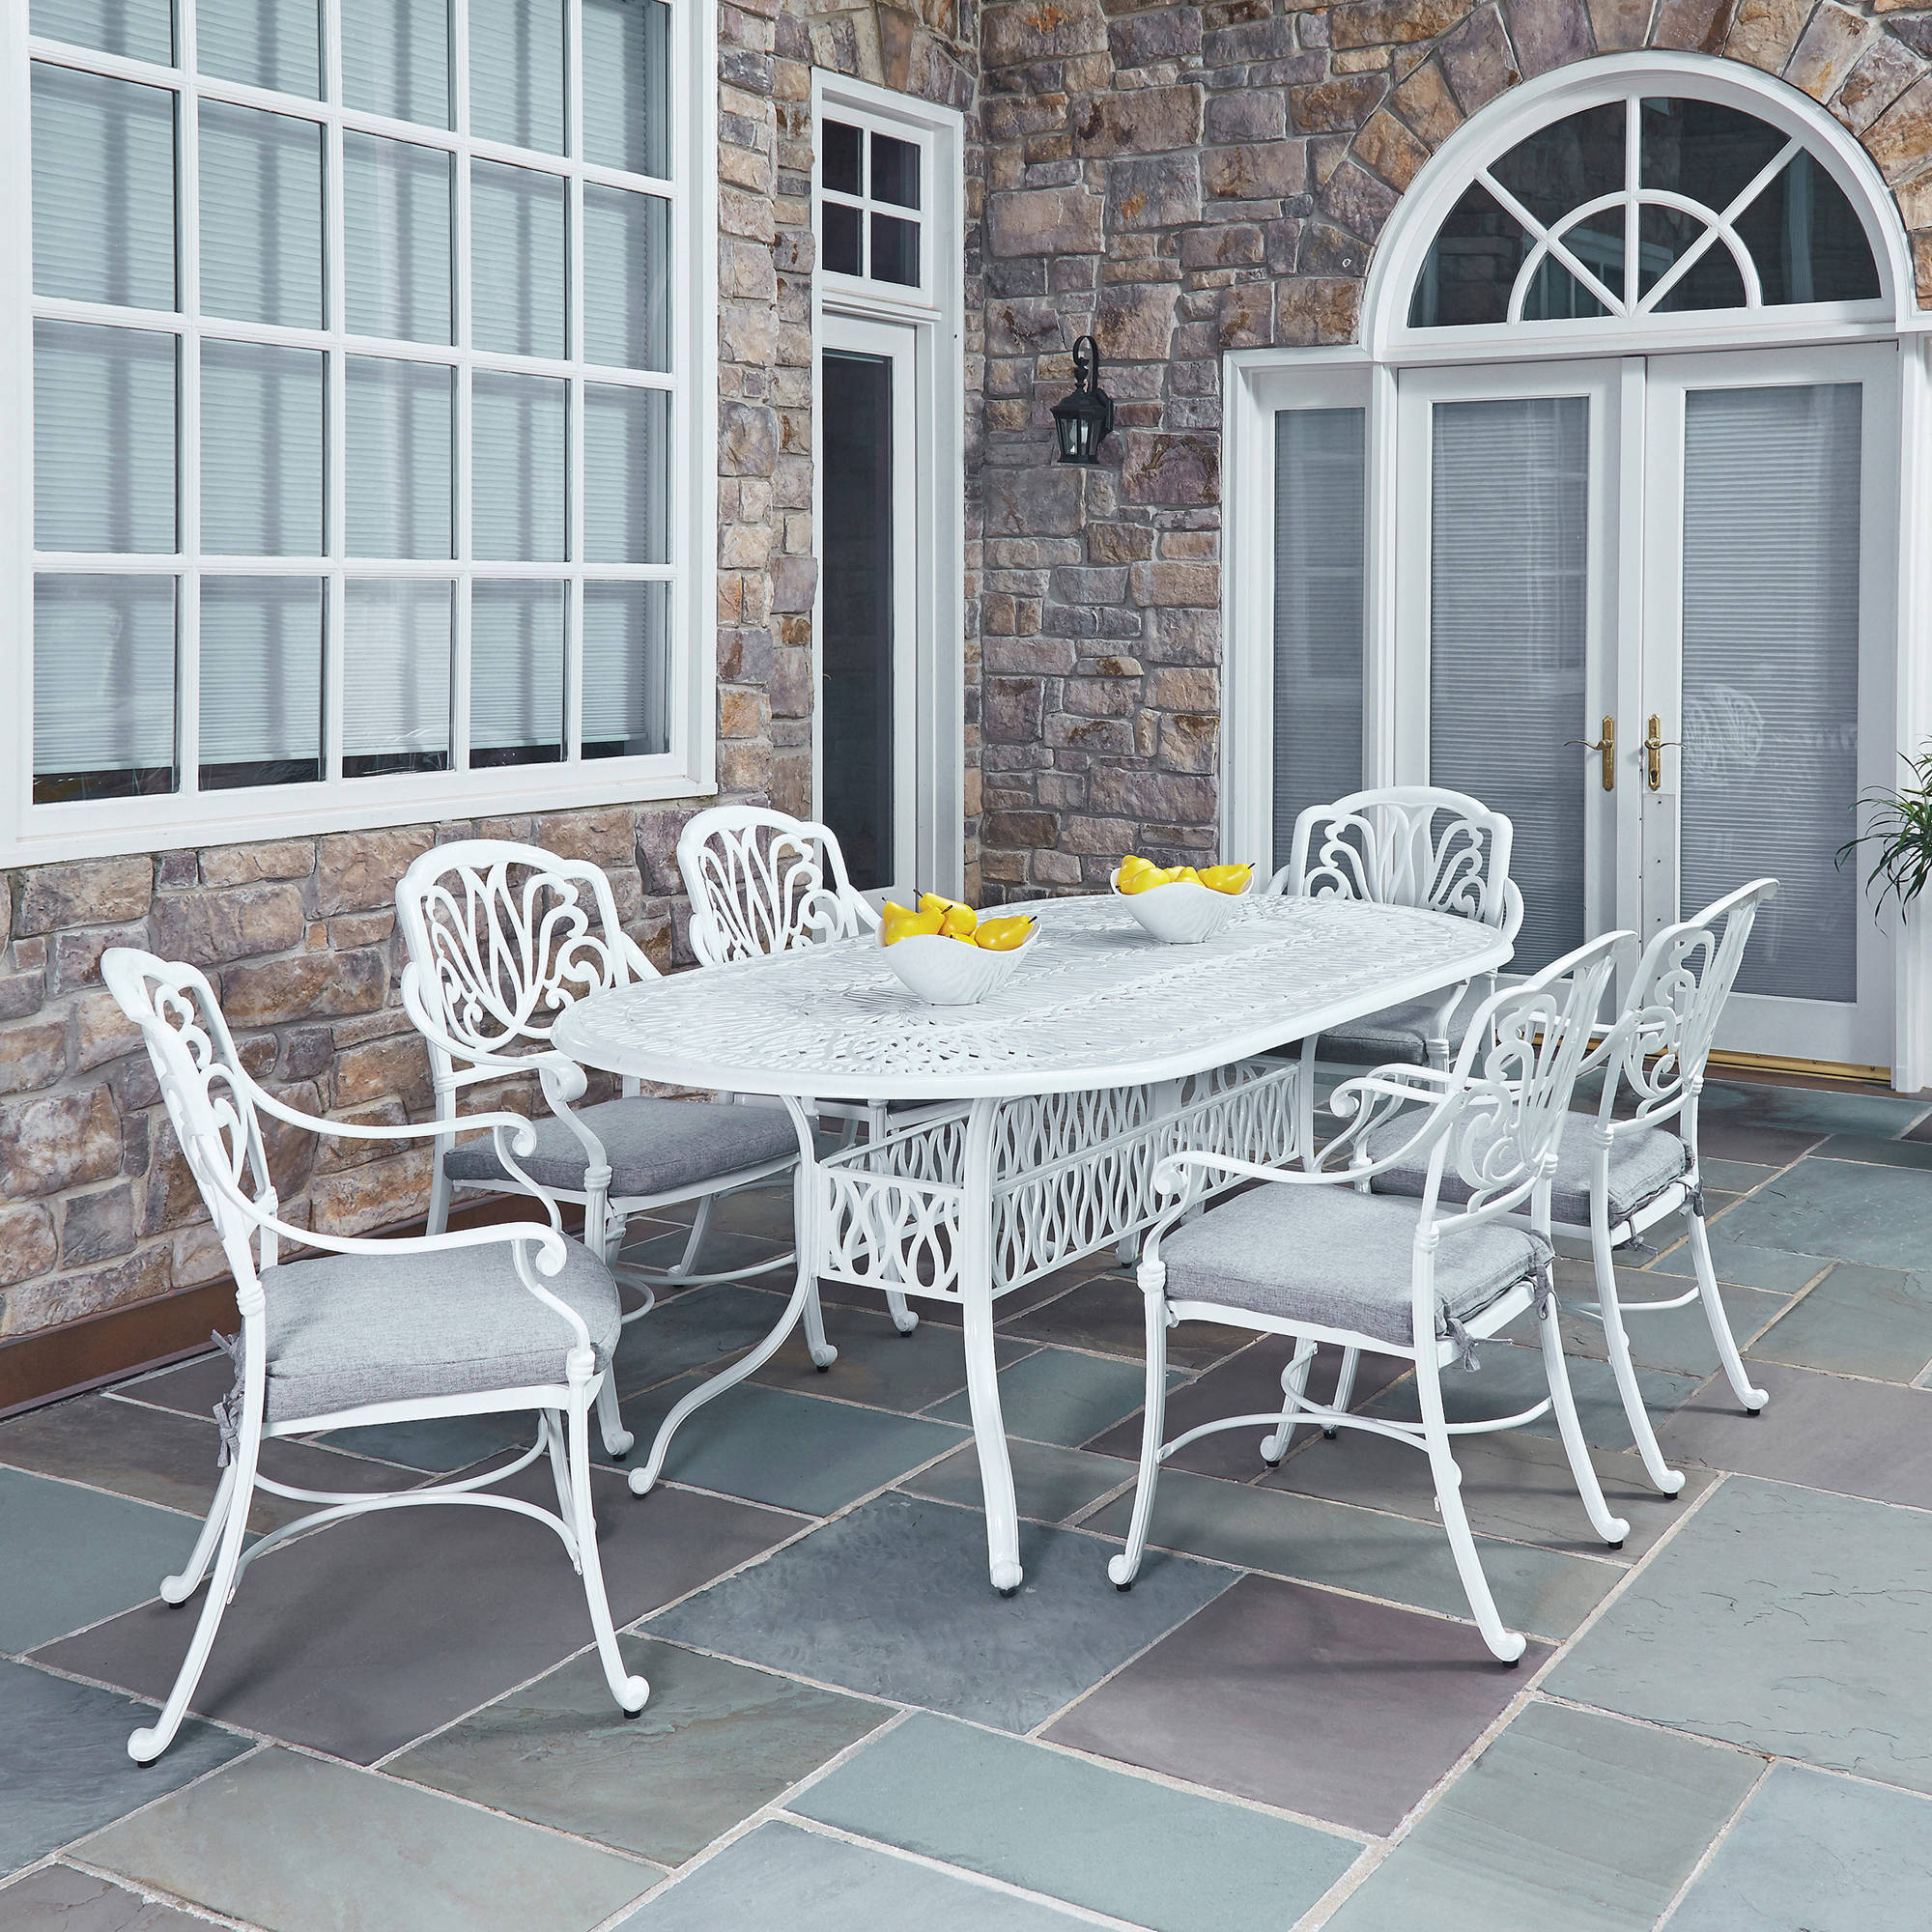 Home Styles Floral Blossom White 7pc Outdoor Dining Set with Oval Table and 6 Arm Chairs